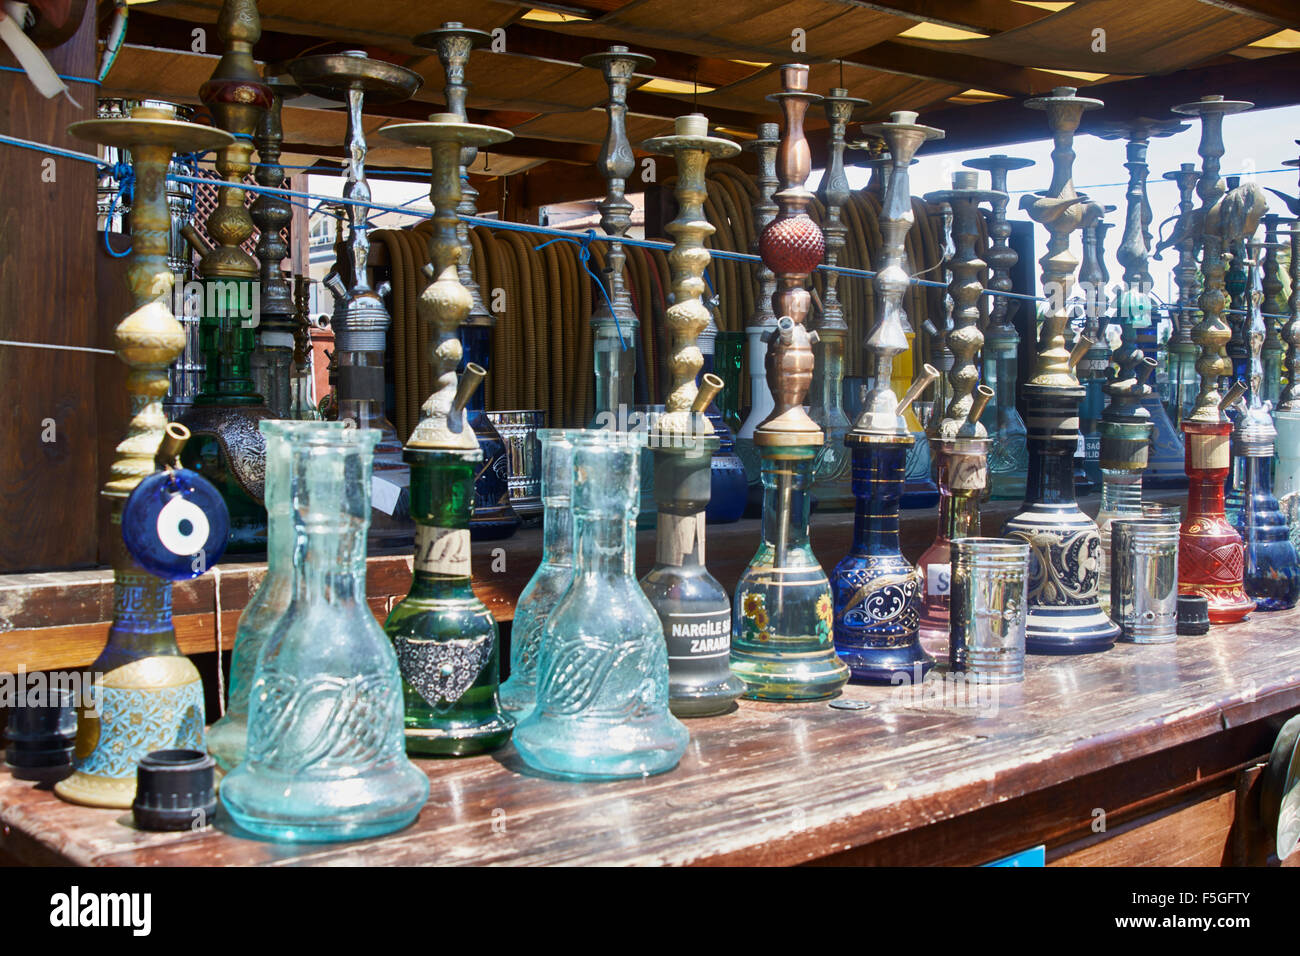 Turkish smoking pipes (hookah) lined up on outdoor bar counter. & Turkish smoking pipes (hookah) lined up on outdoor bar counter Stock ...